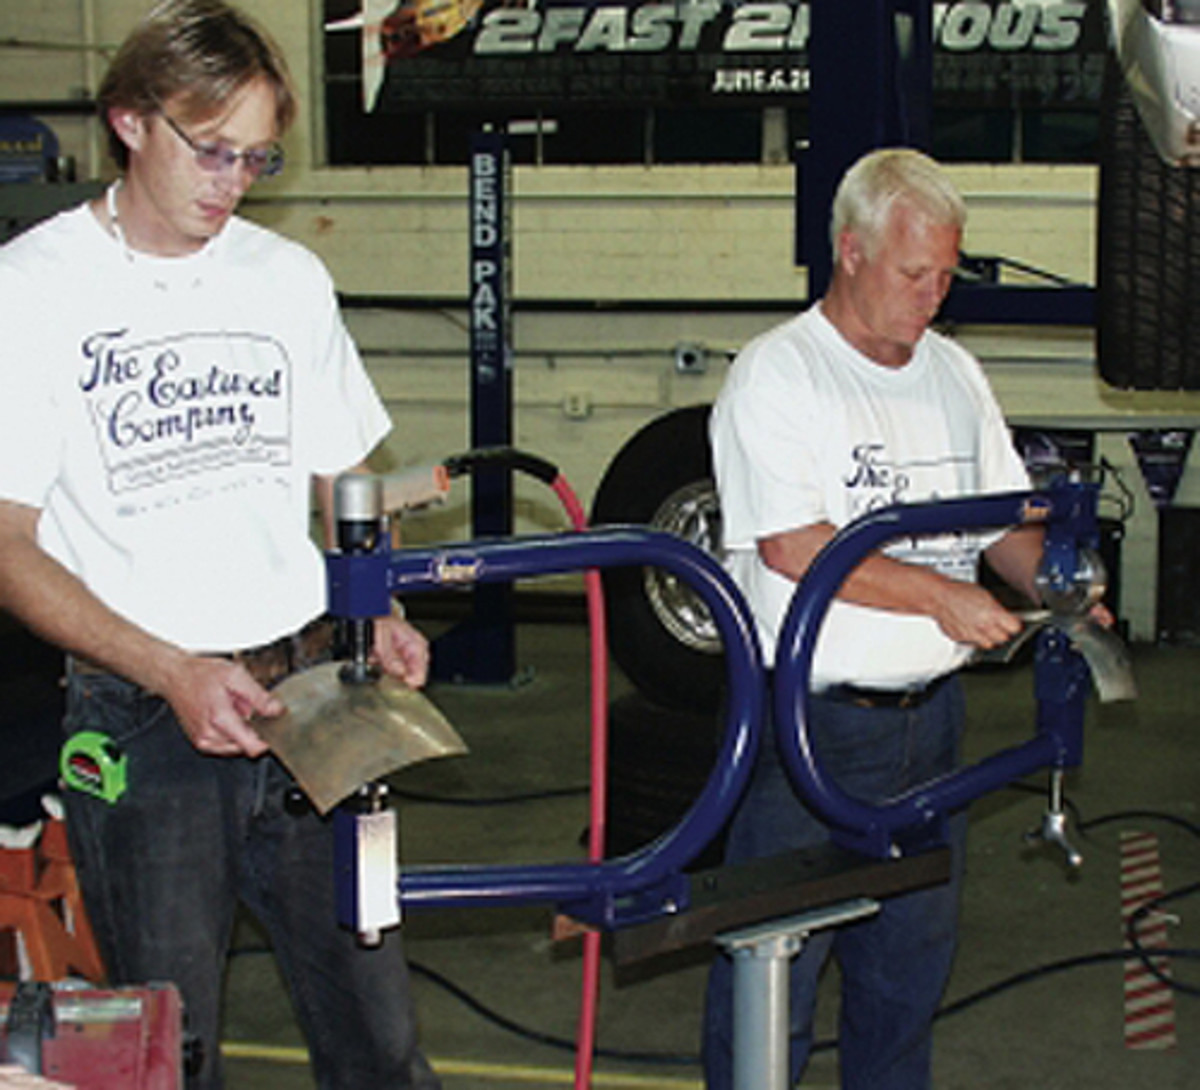 Planishing hammers and English wheels are metal working tools that are often confused with each other. The Eastwood Company builds English wheels and planishing hammers mounted on a universal tool stand.